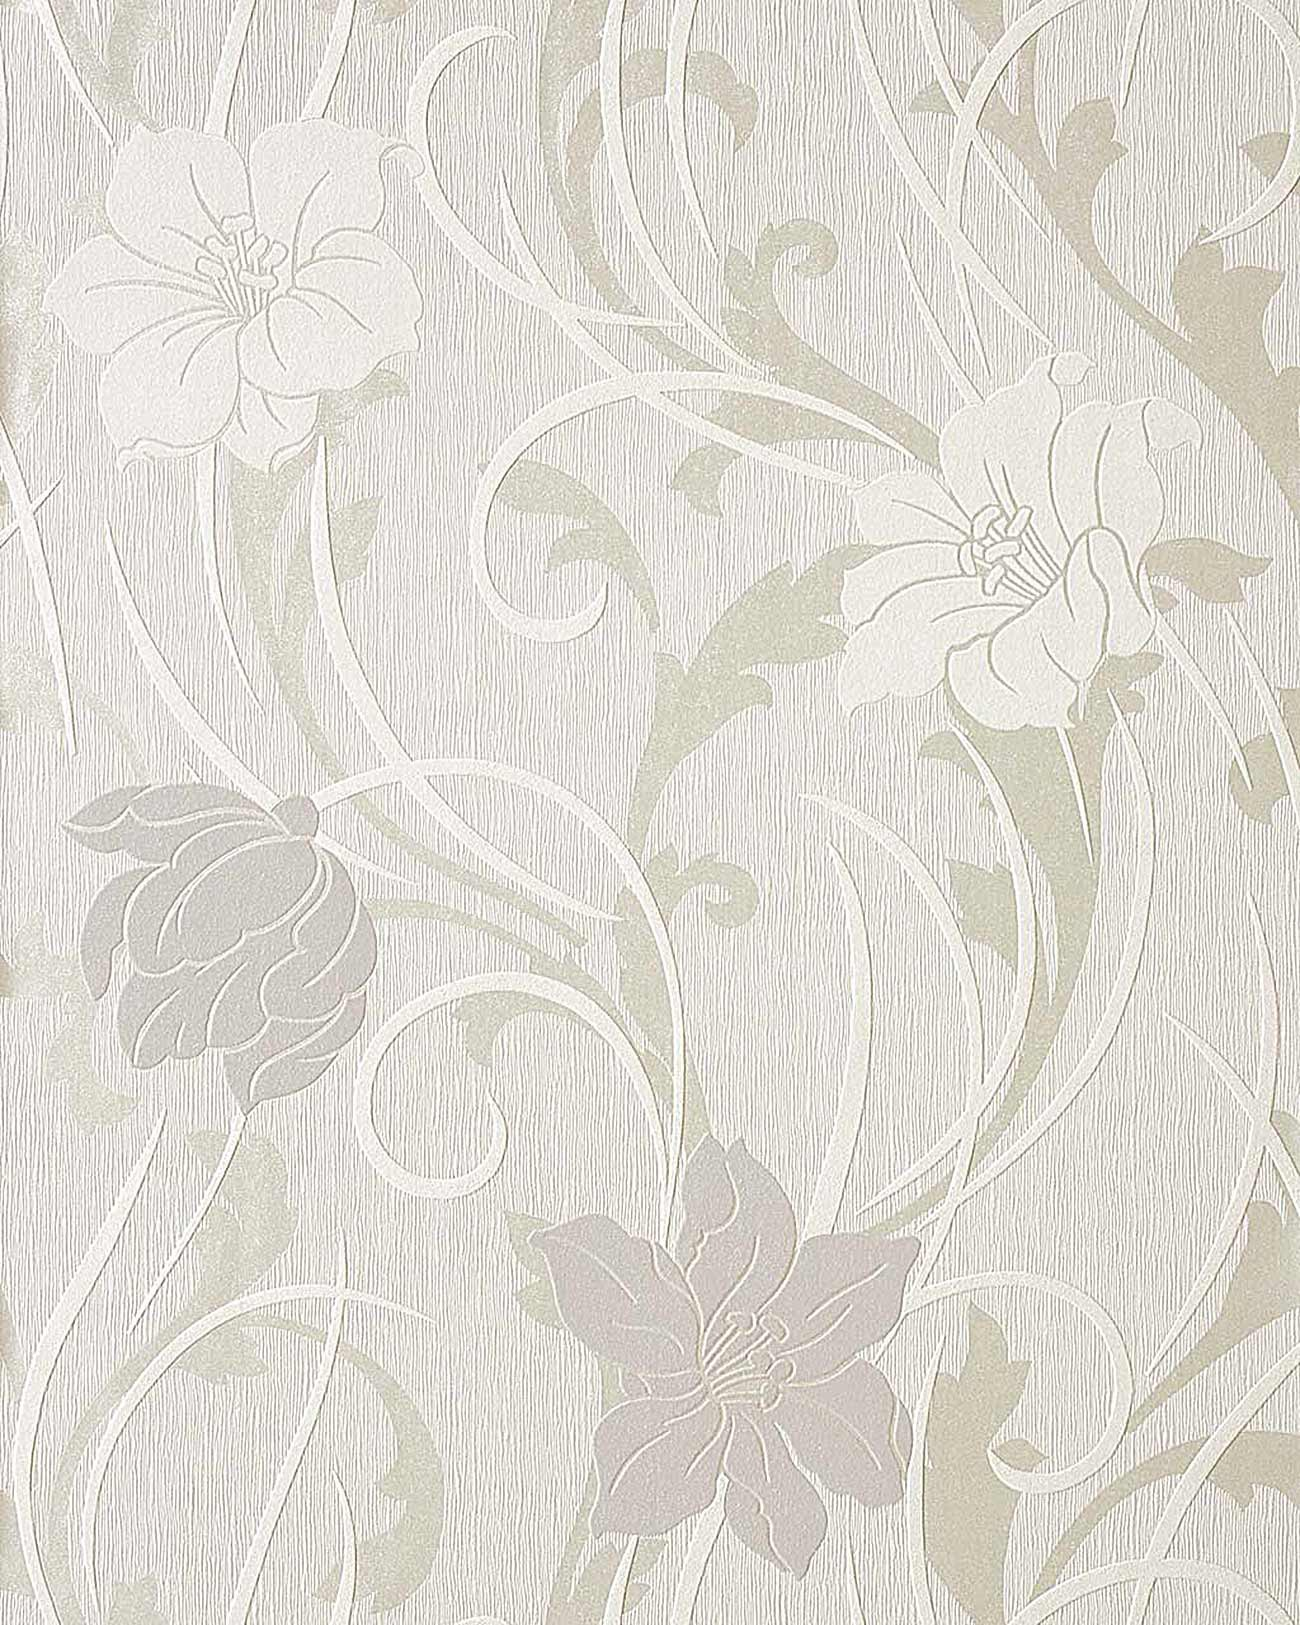 Free Download Wallpaper Wall Style Flower Floral Vinyl Edem 111 30